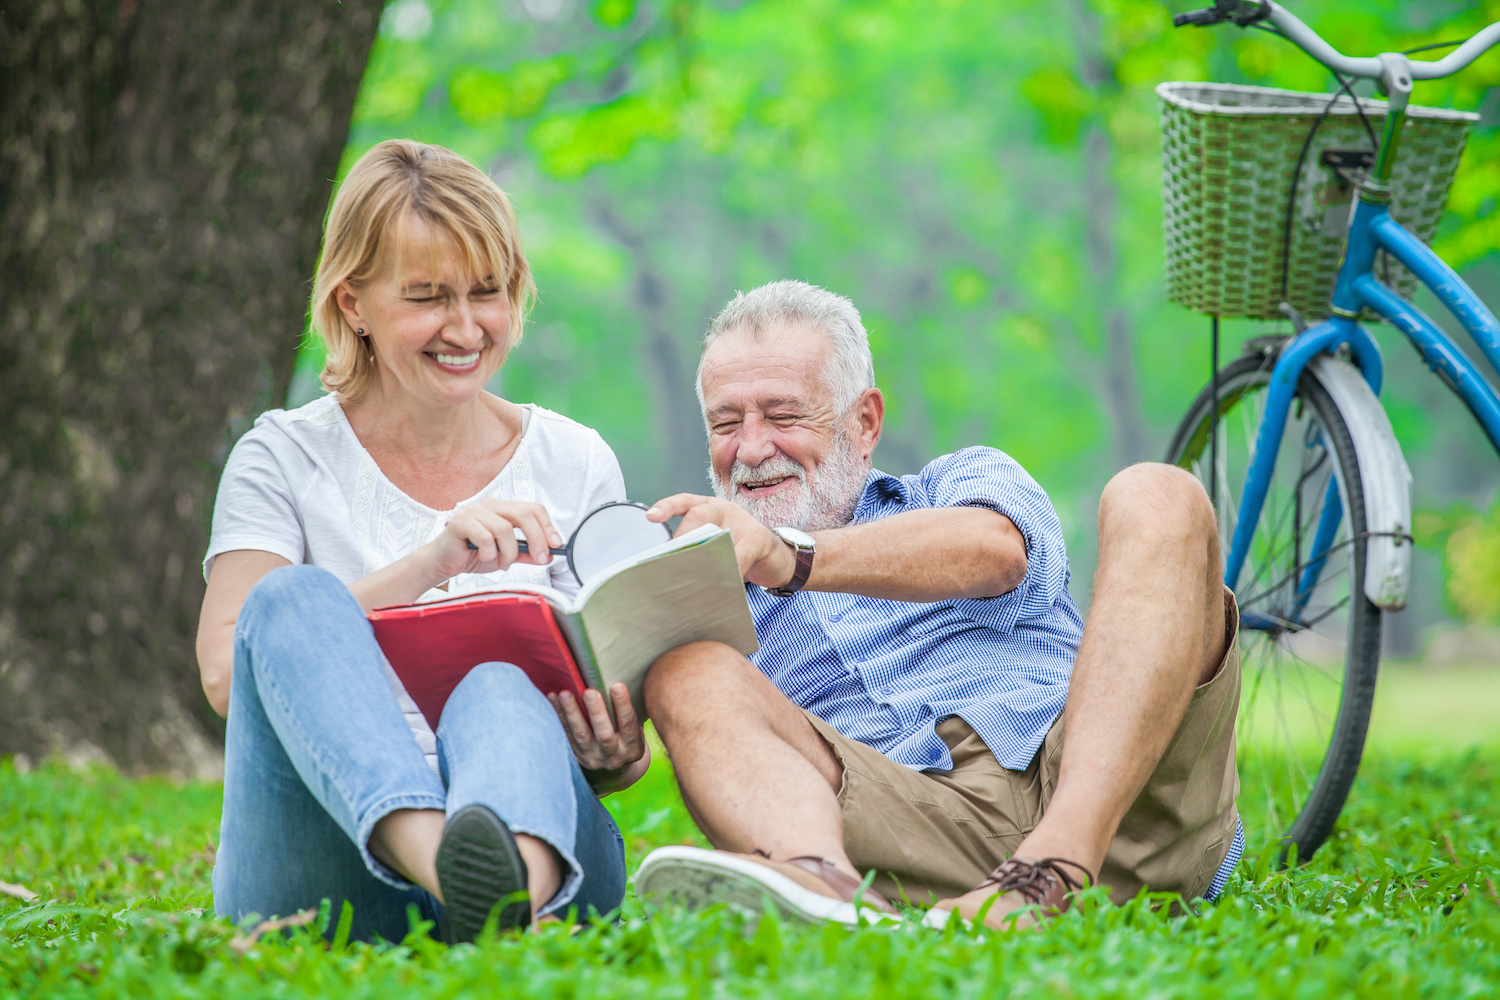 Happy elderly couple with smiling face enjoying together, reading a book with magnifying glass in the park, spending time and relaxing time concept. | North Houston